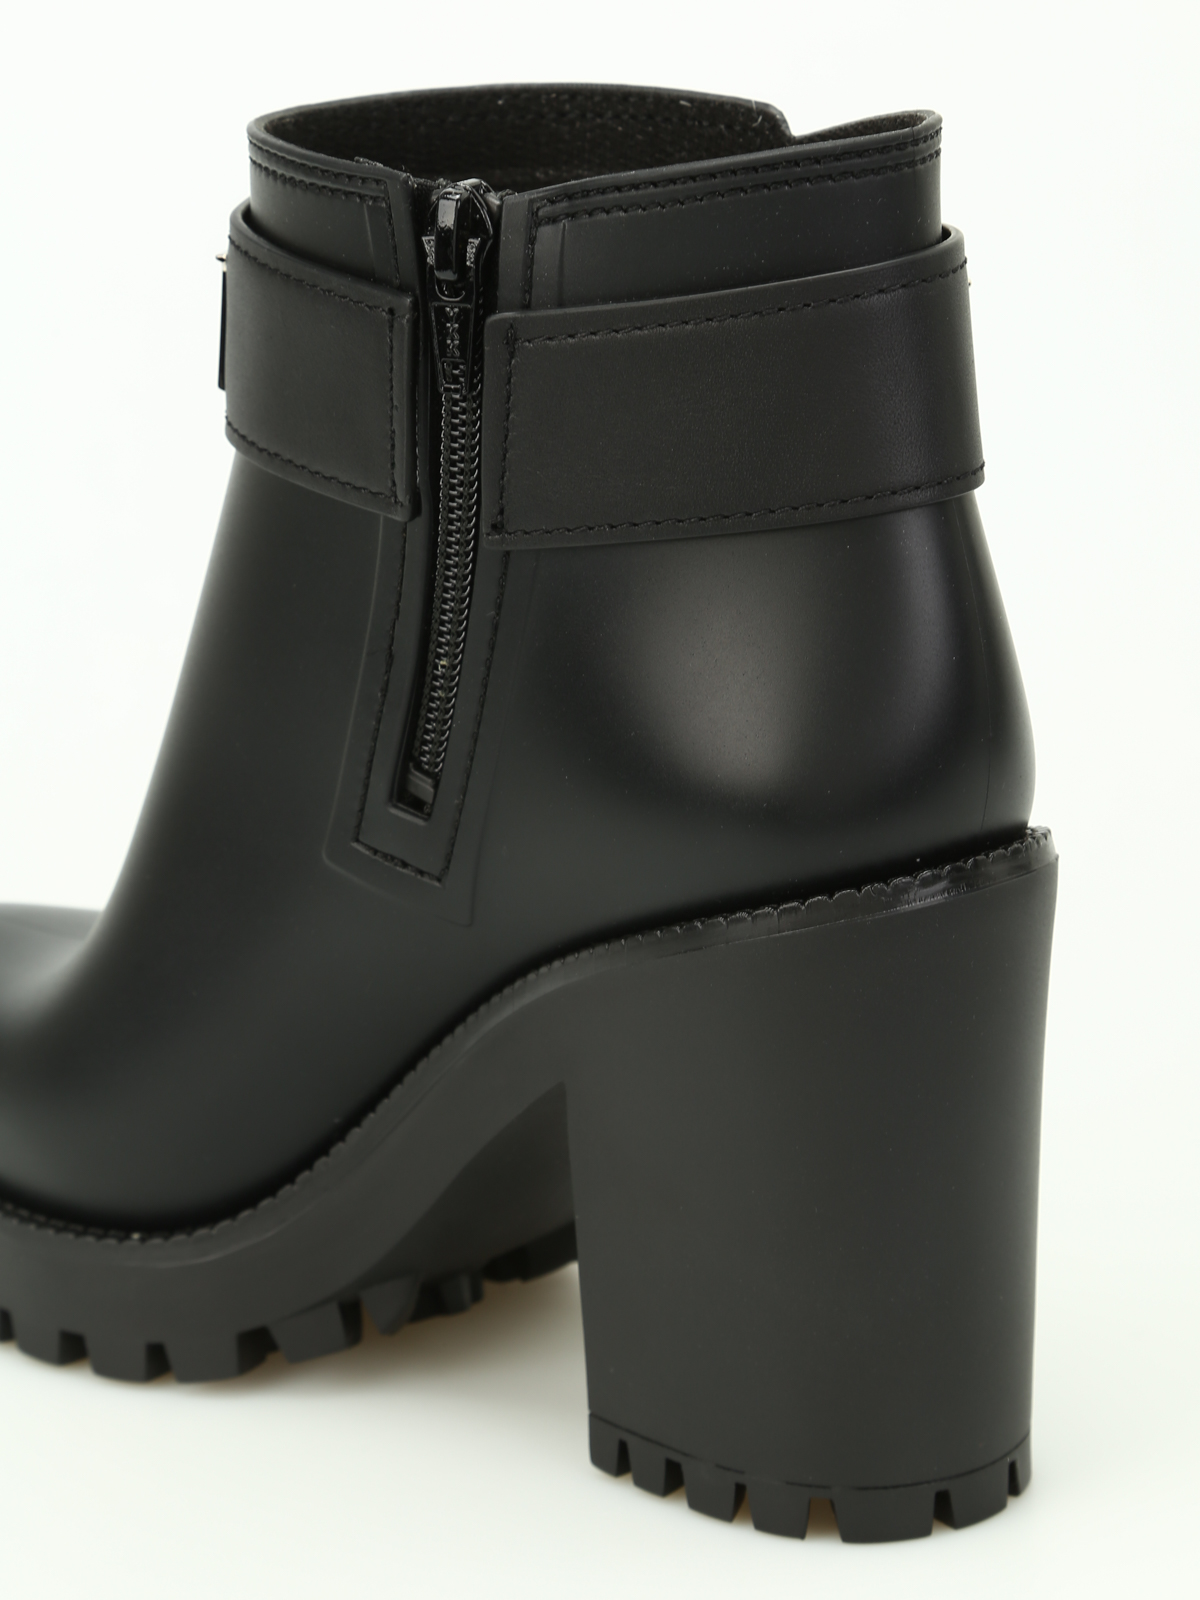 239a4f3fe919 Philipp Plein - Calla gummy booties - ankle boots - A17S WSG0023 ...